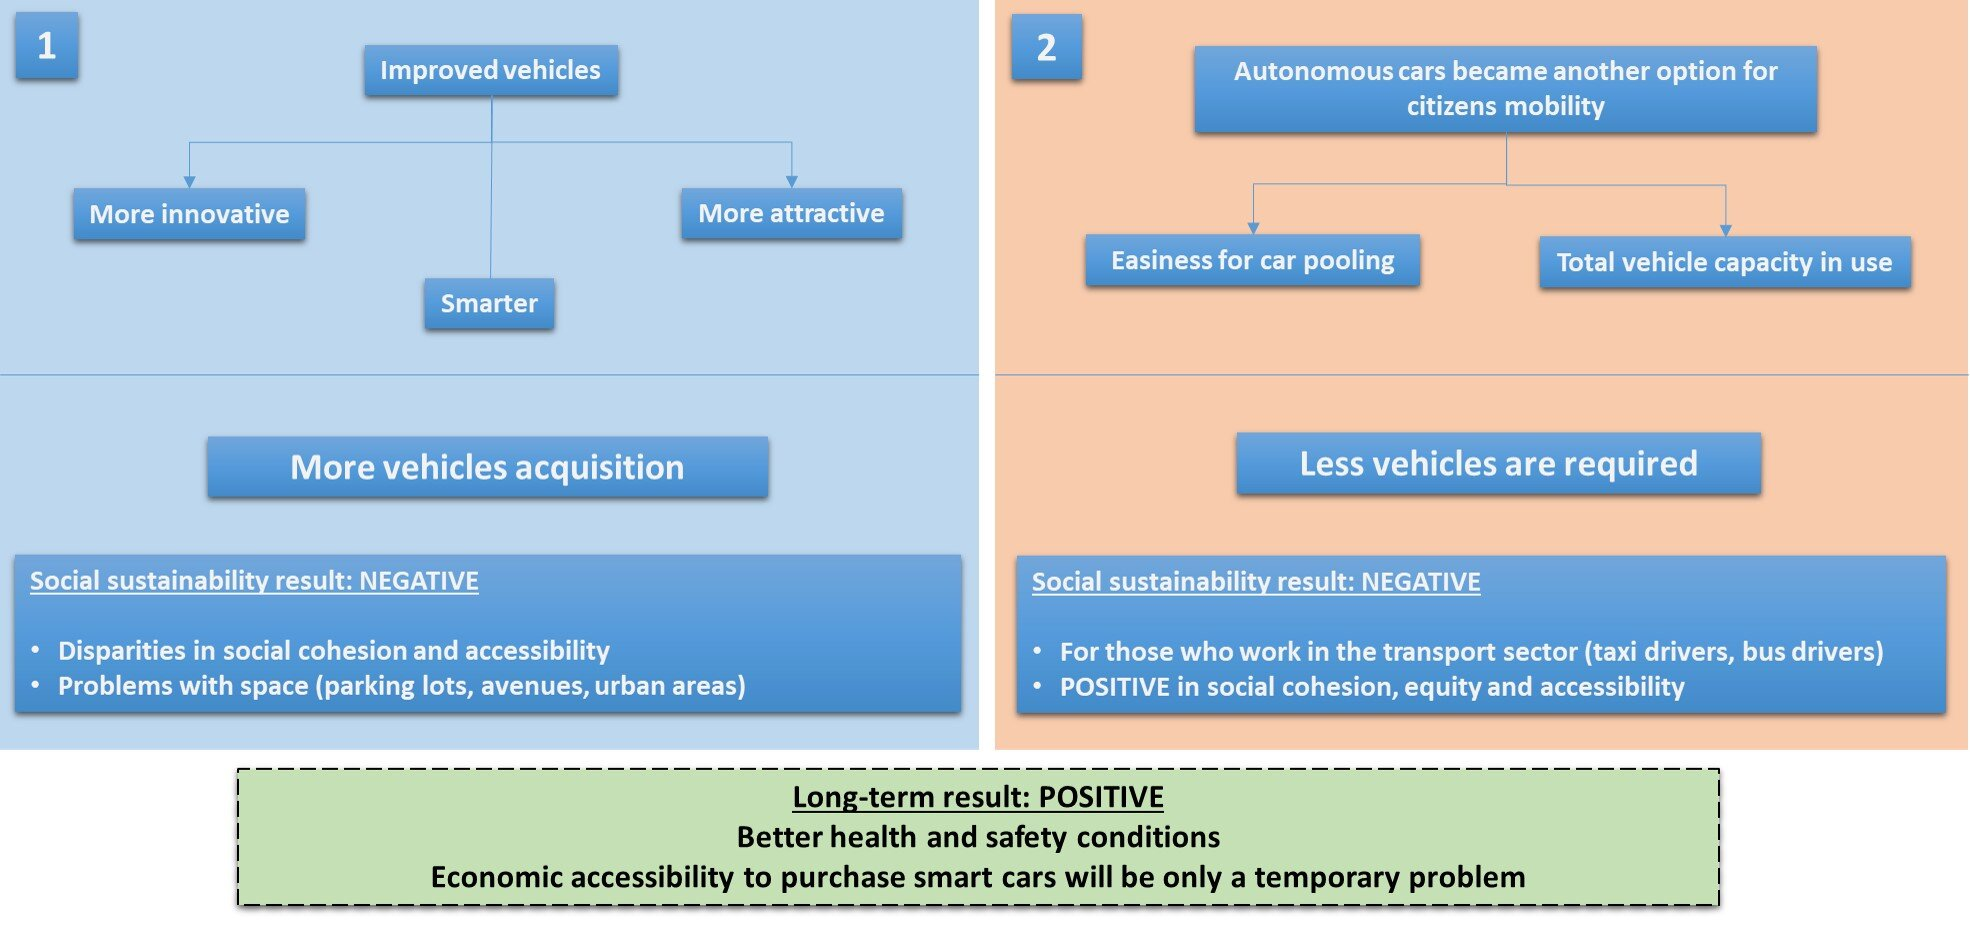 Figure 1. Social scenarios for the development of intelligent mobility (Own elaboration with information from Jekkel, 2017).